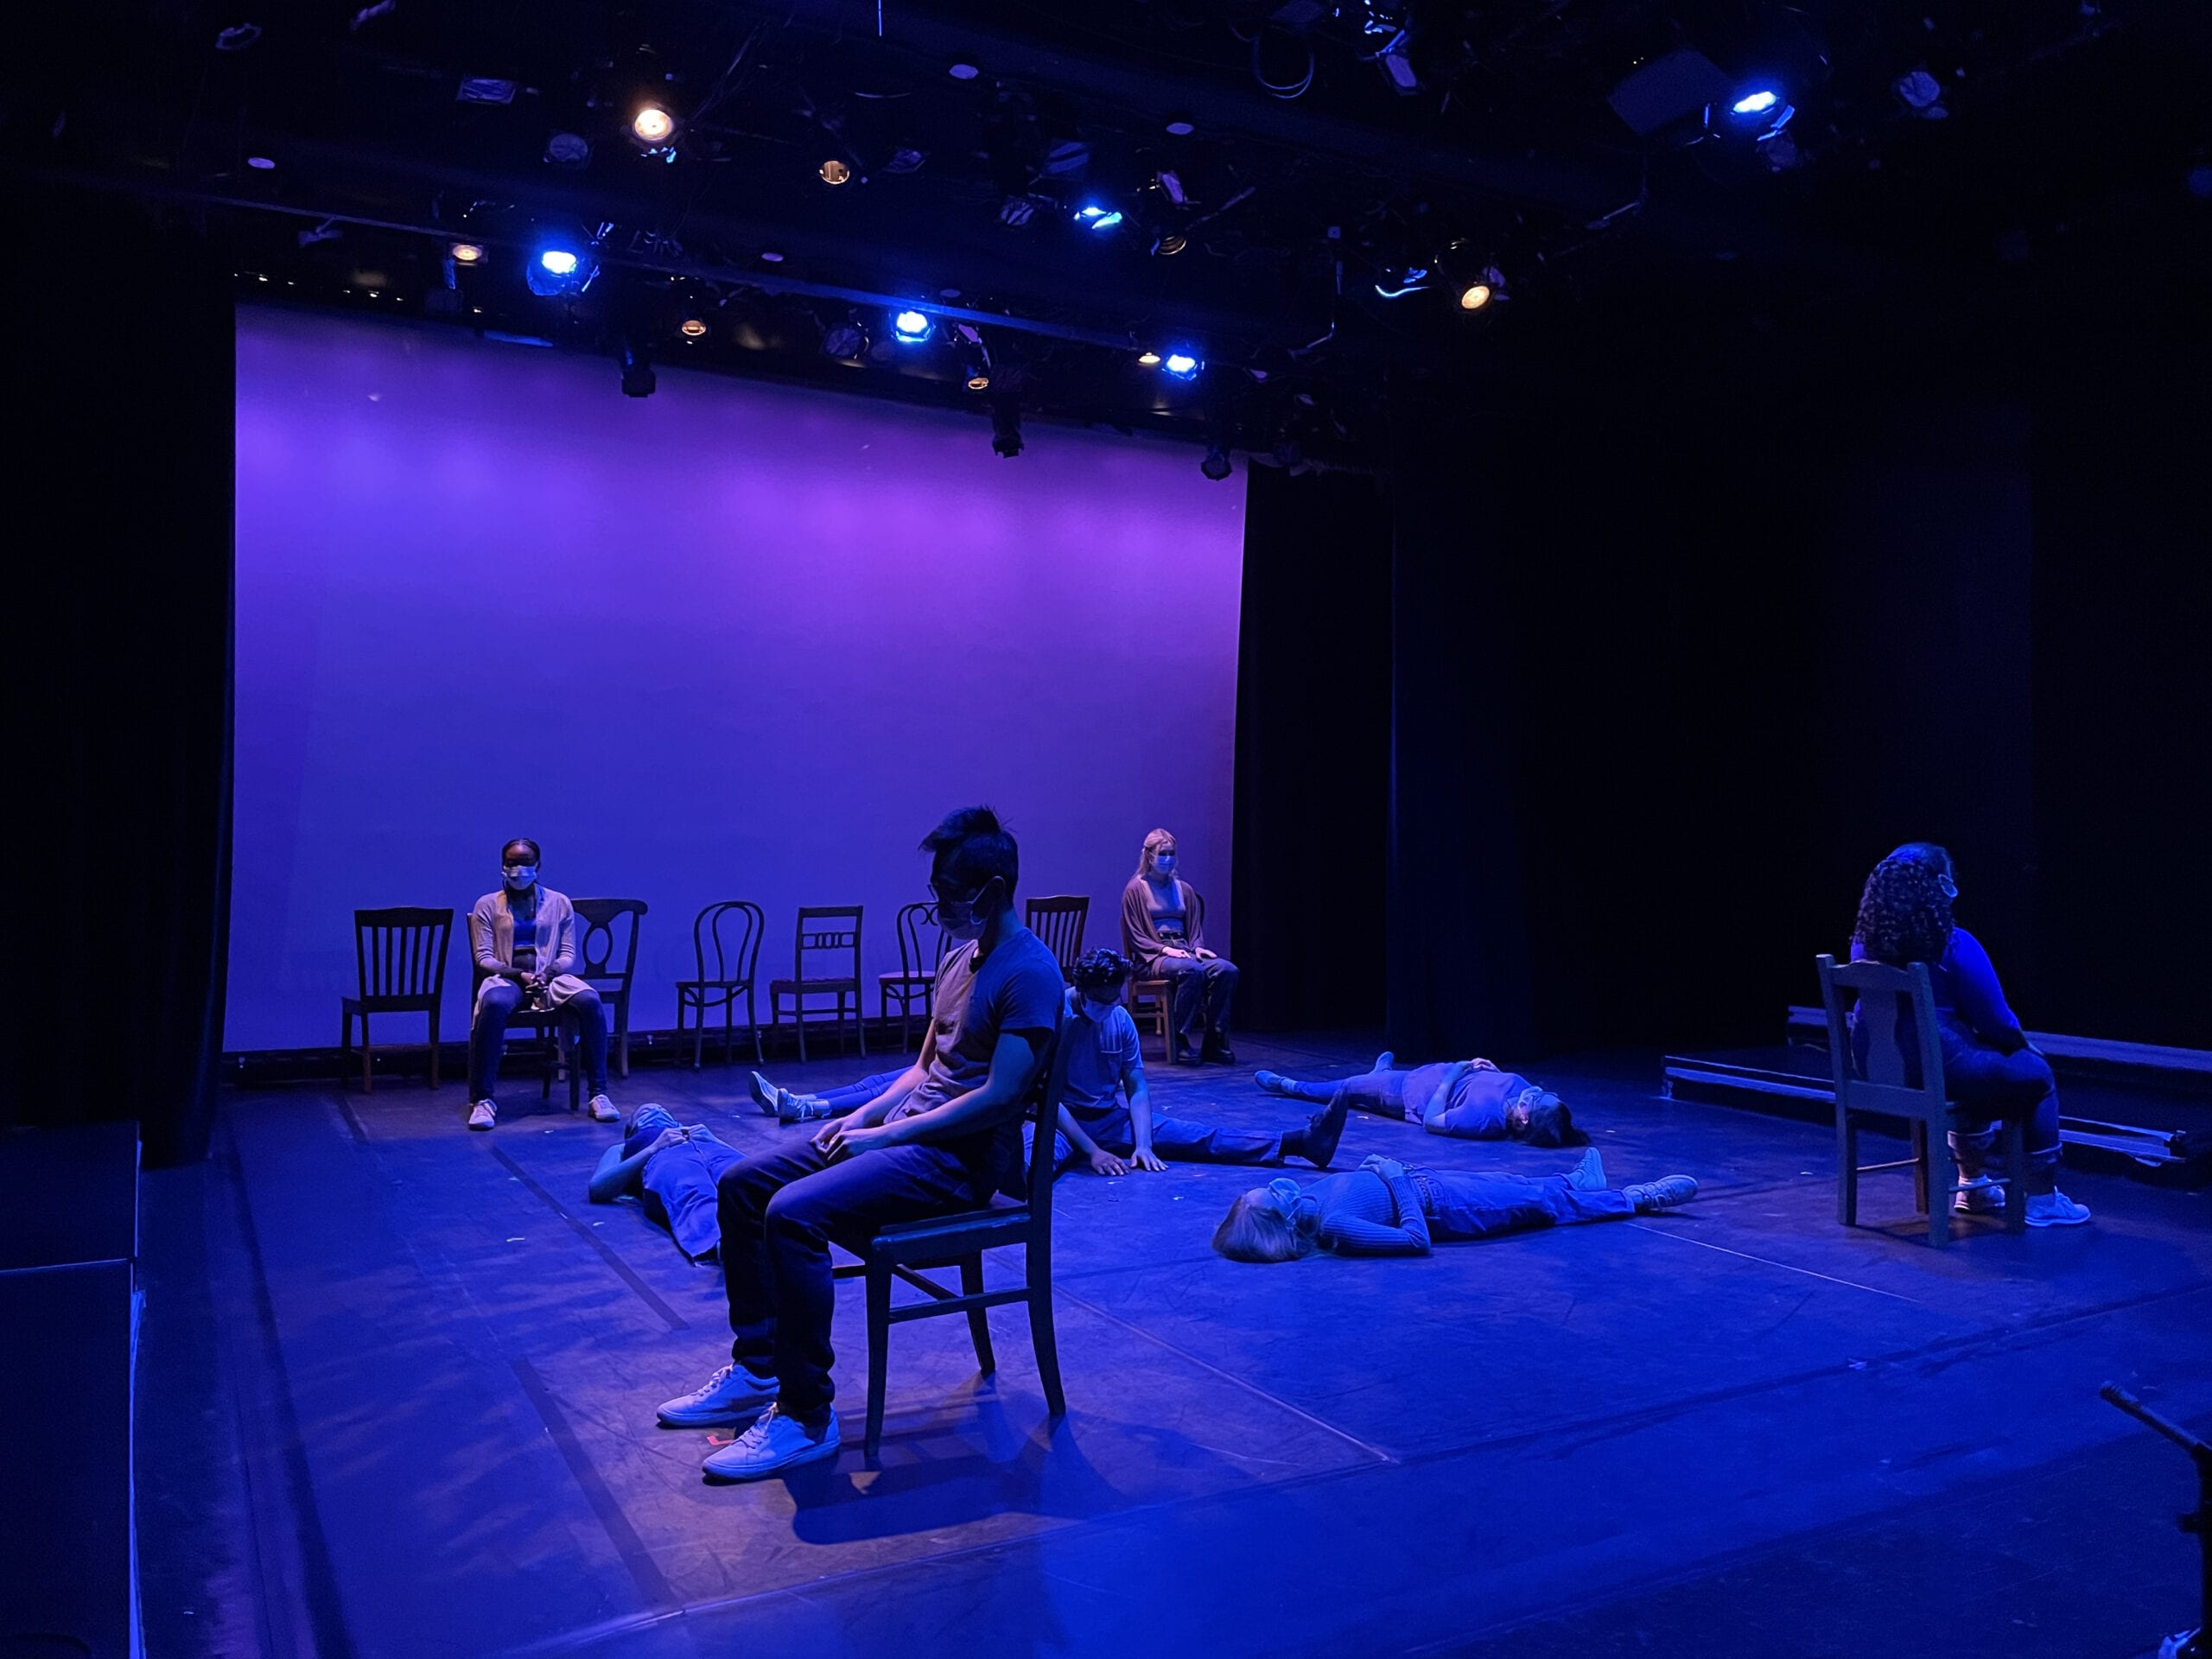 Creating live/filmed theatre in times of COVID